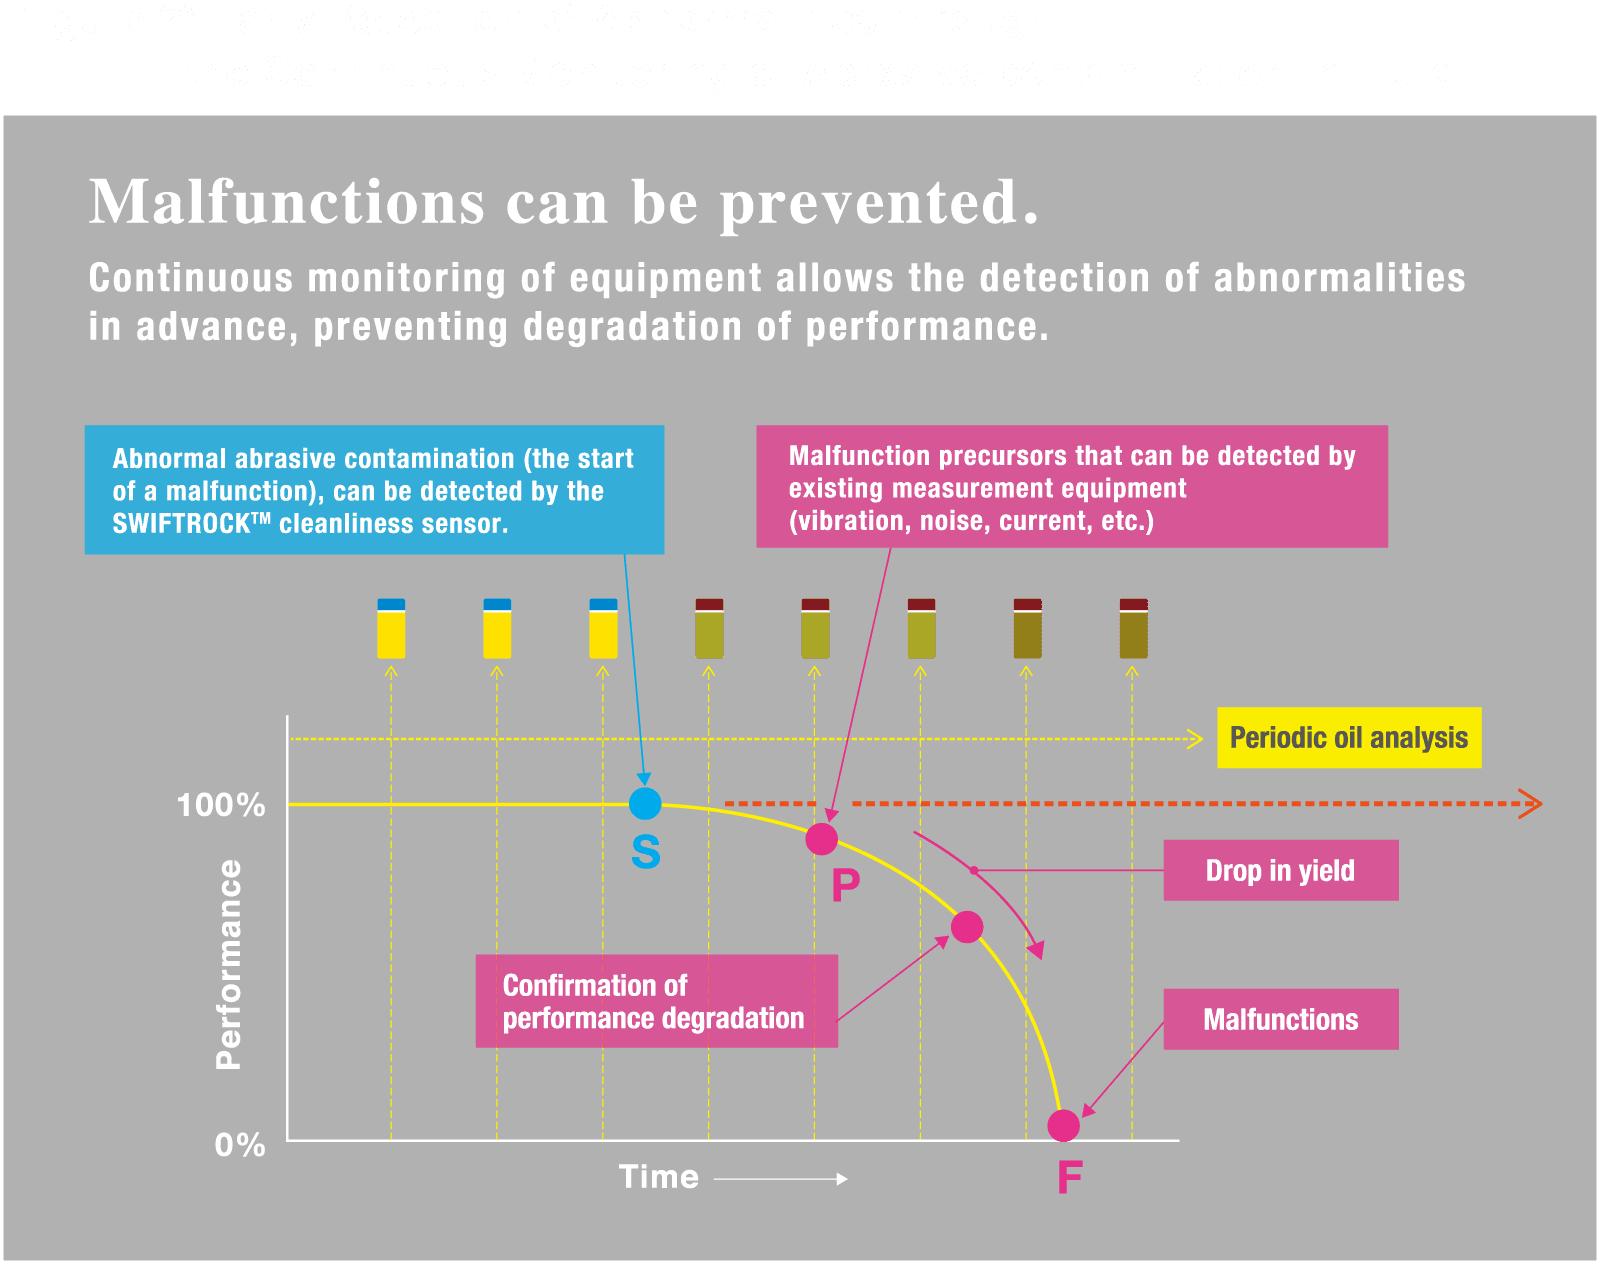 Figure 2) Early Detection of Abnormalities through the Continuous Monitoring of Abrasive contamination in Fluid